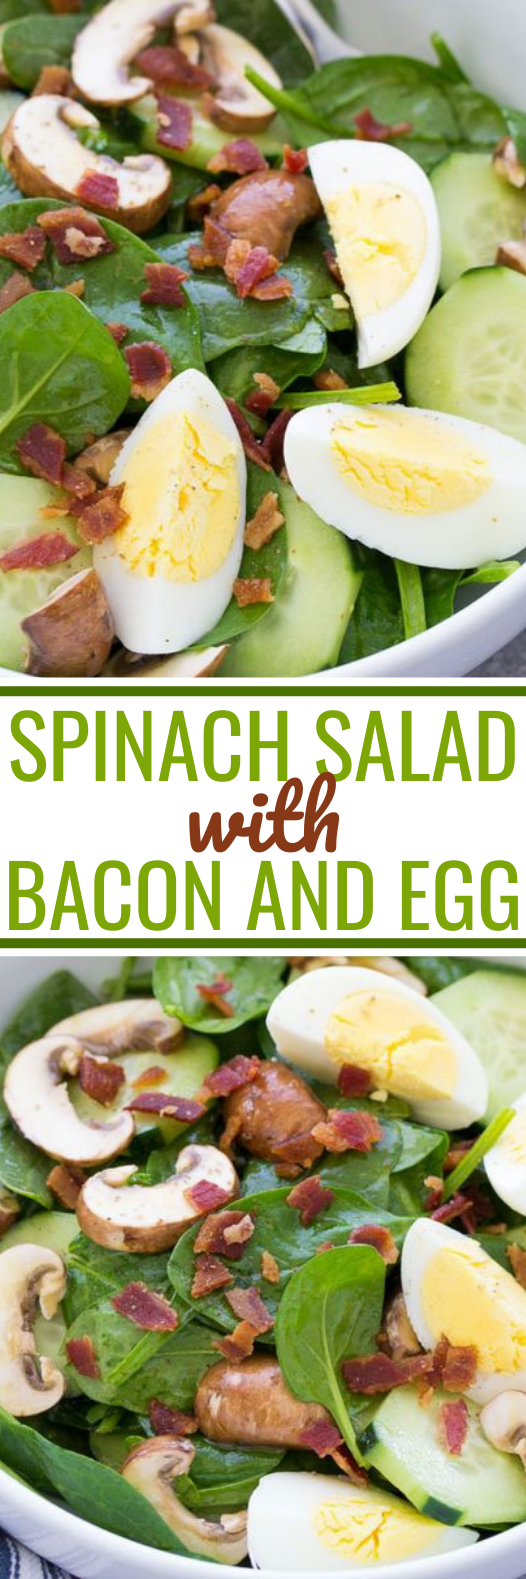 Spinach Salad with Bacon and Eggs #healthy #lunch #salad #glutenfree #keto